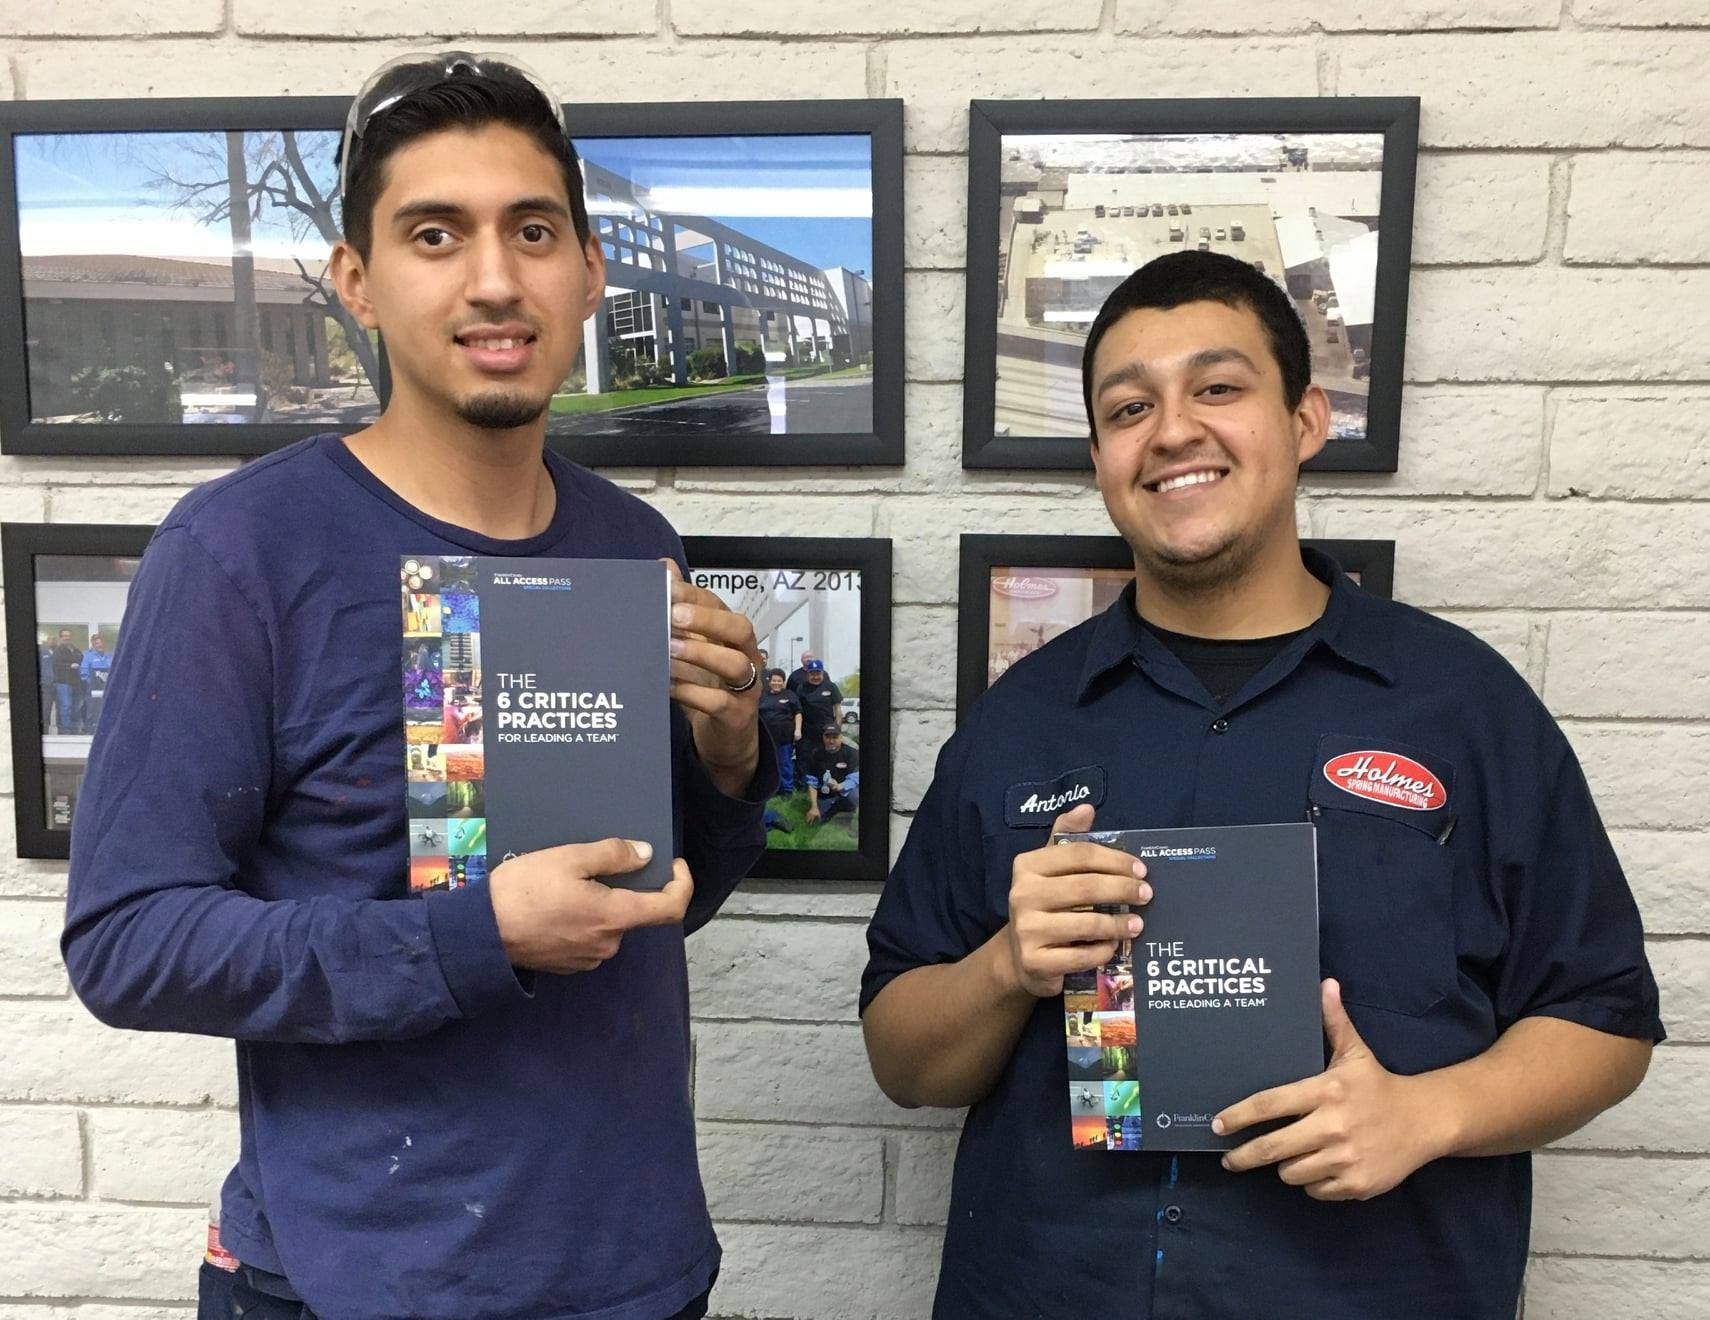 Two employees smiling holding leadership manuals